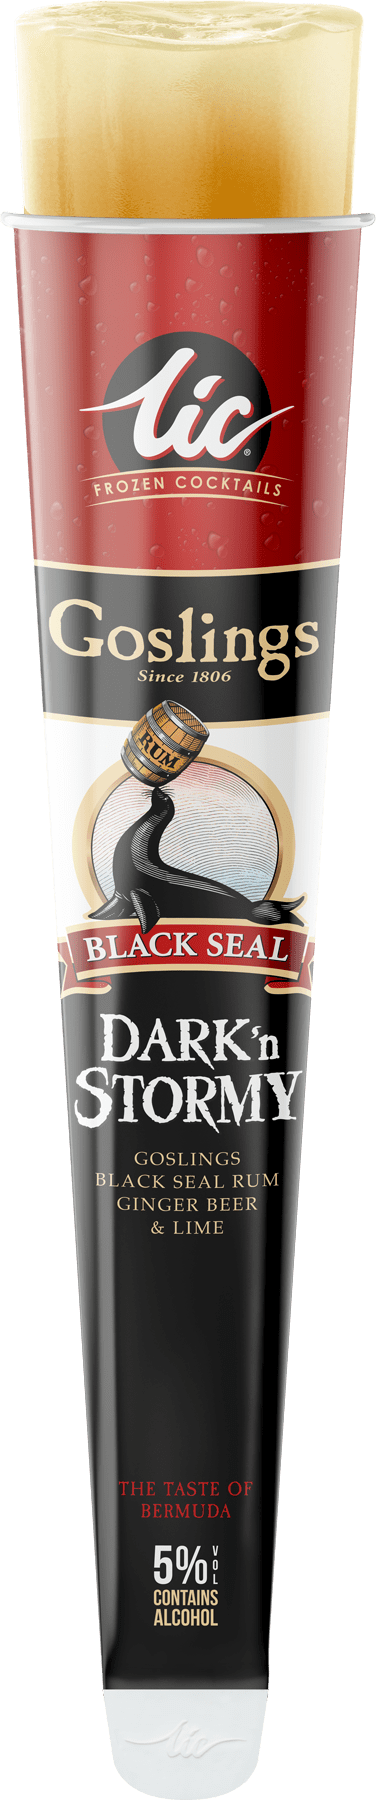 Goslings: Dark & Stormy